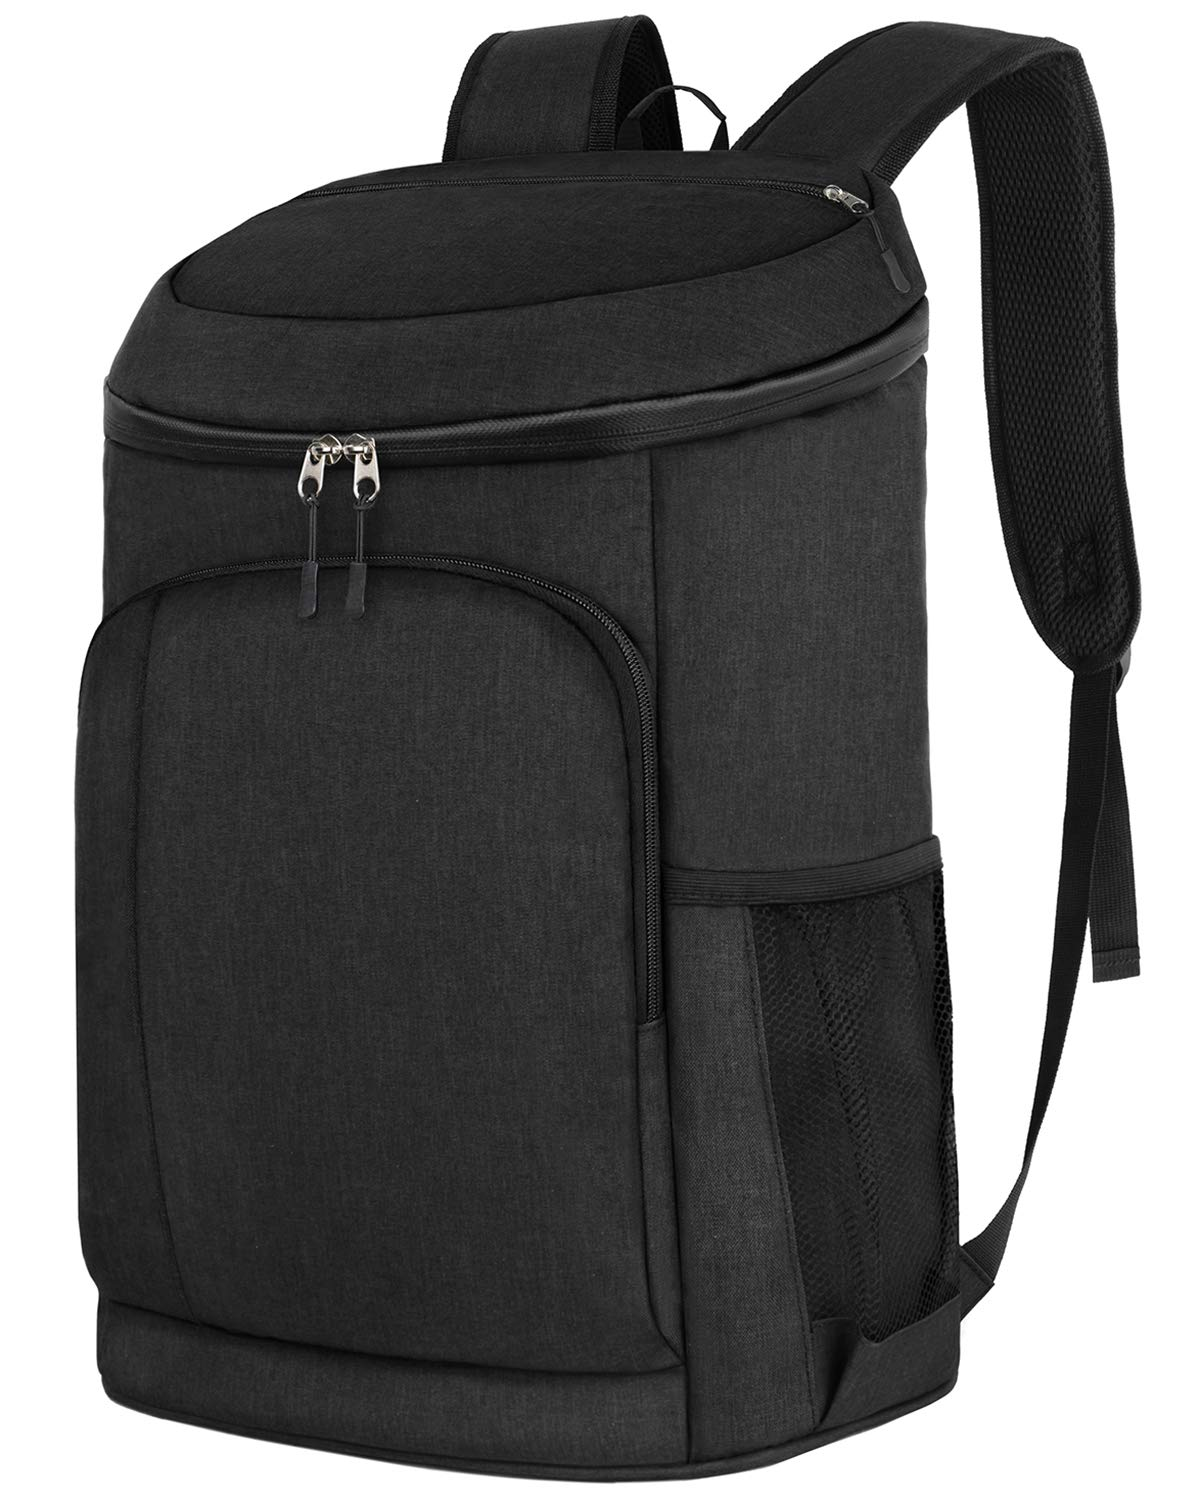 Deegotech Insulated Cooler Backpack, Soft Leakproof Lunch Backpack for Men Womem, 30 Cans Backpack Cooler Bag for Beach Hiking Camping Travel Picnic, Black